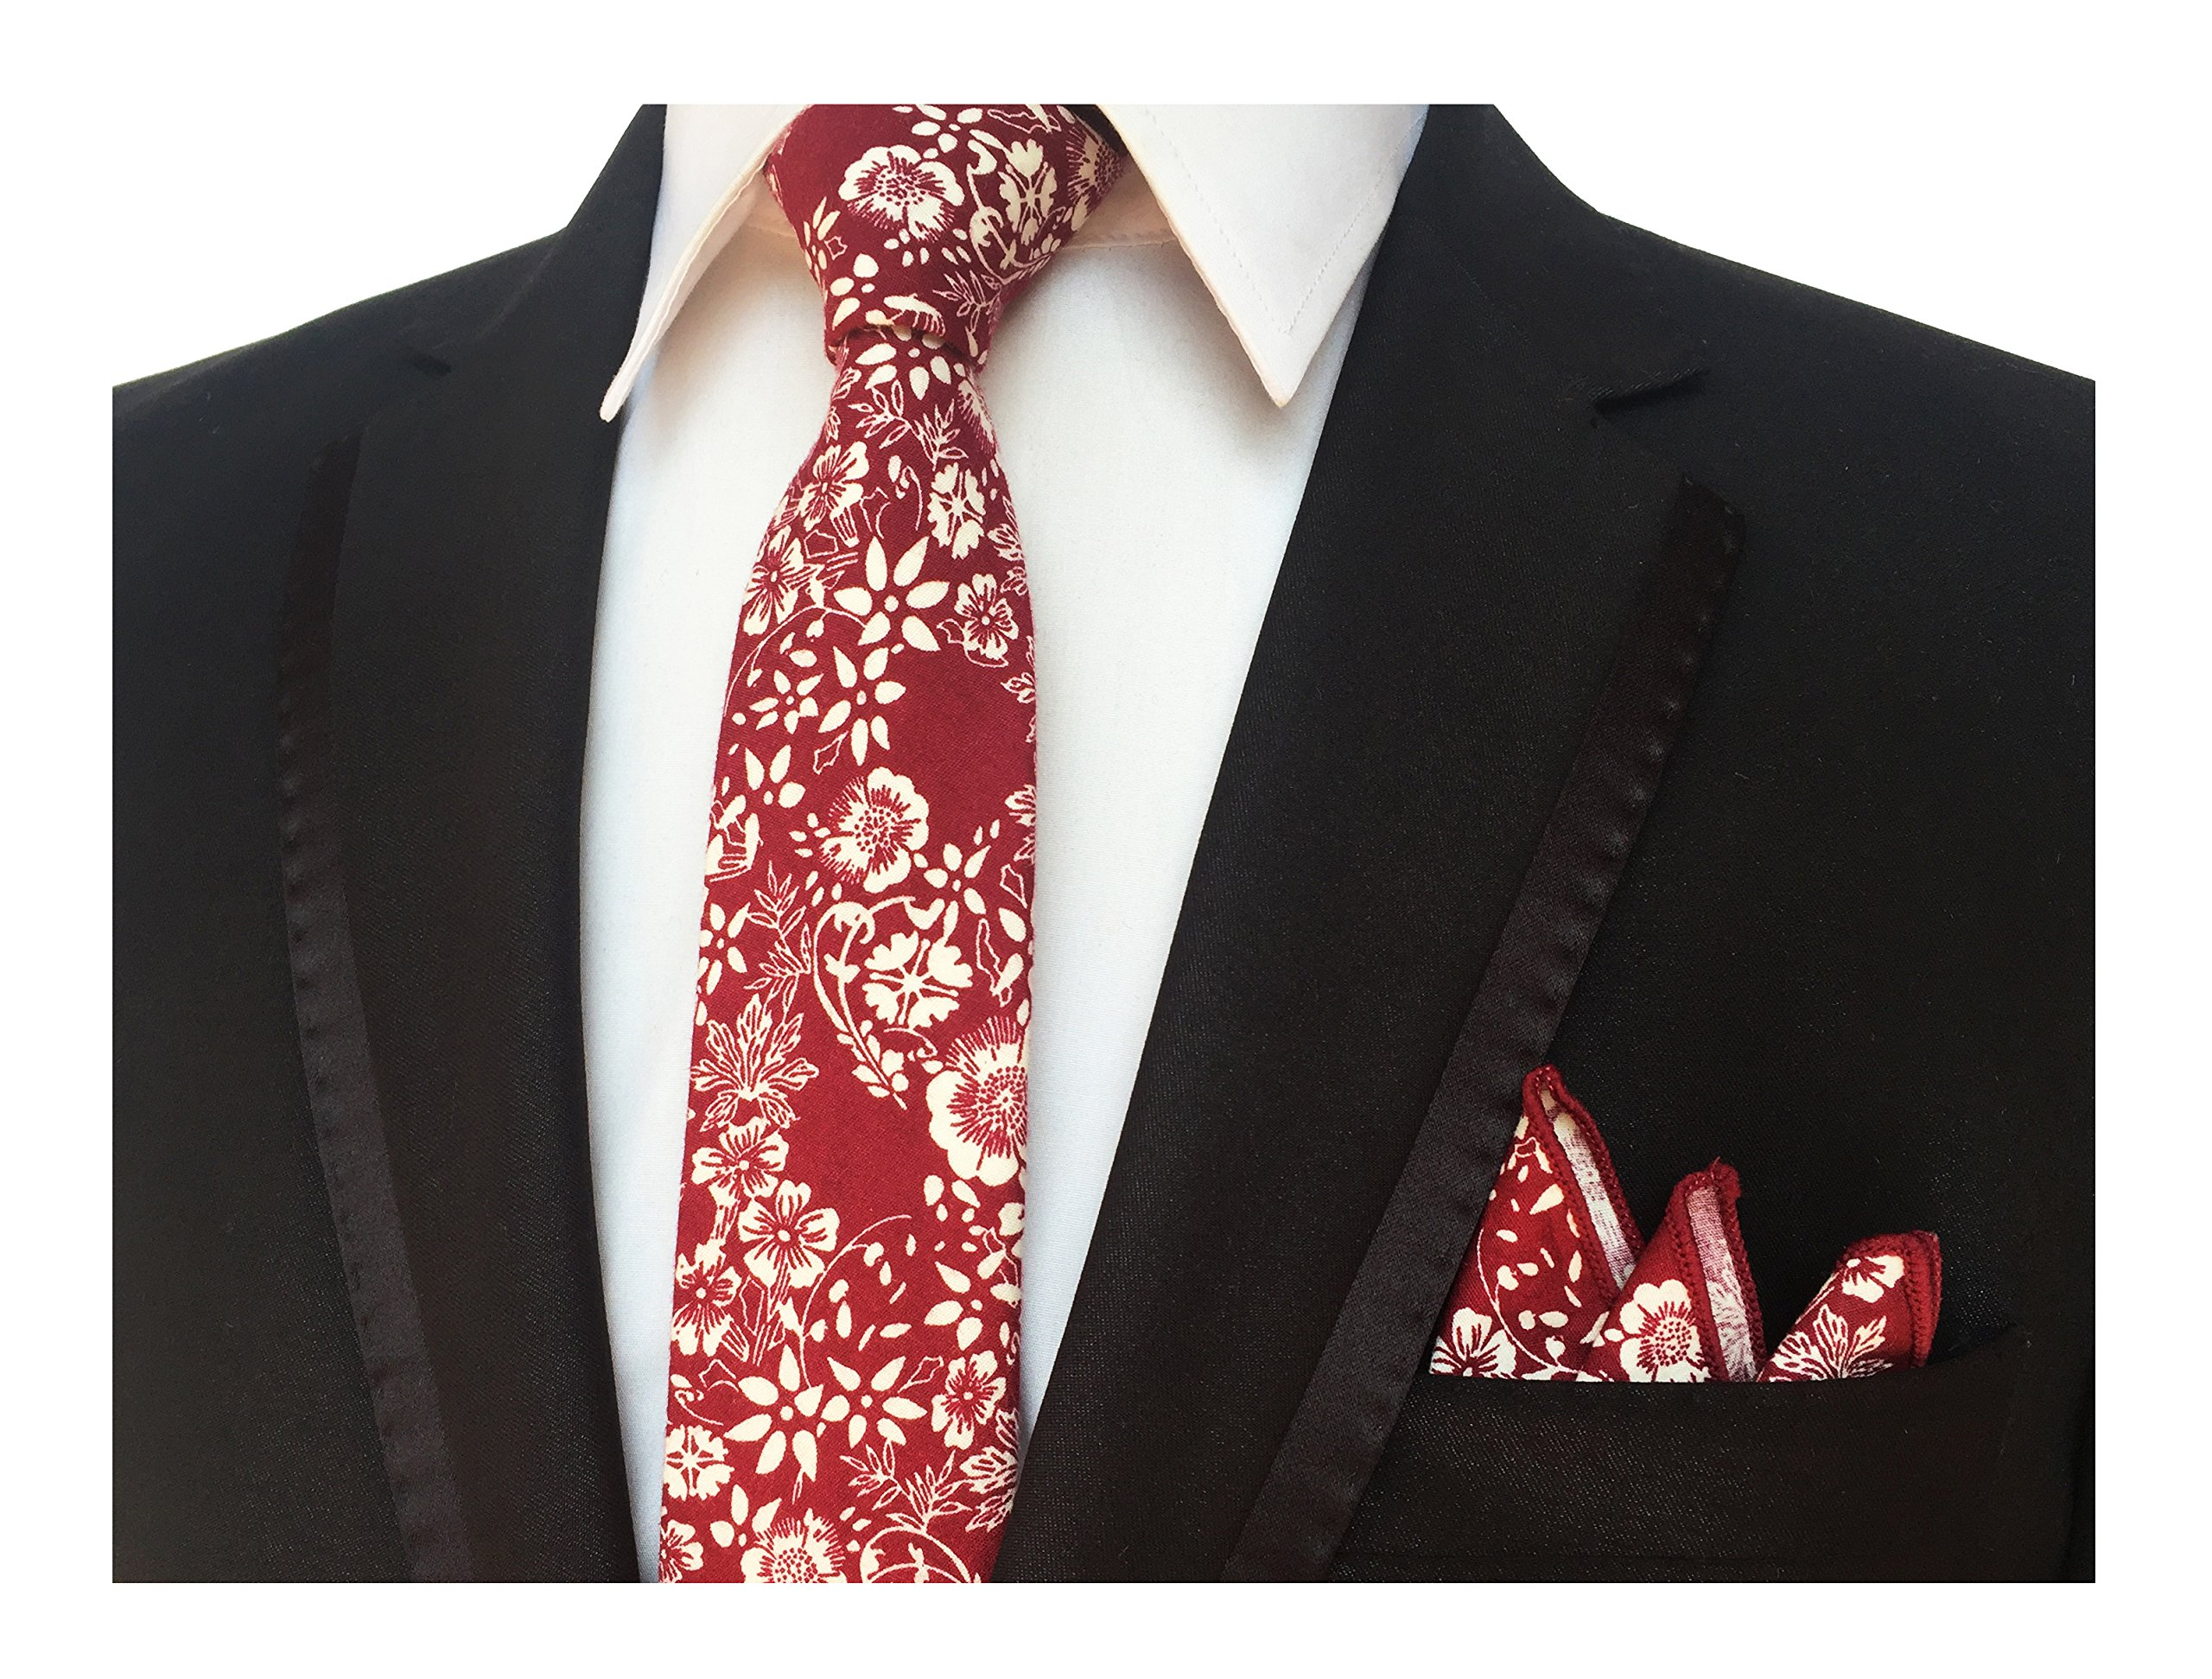 Men's Red White Ties Cotton Flowers Printed Neckties Great for Weddings Gifts by Elfeves (Image #1)